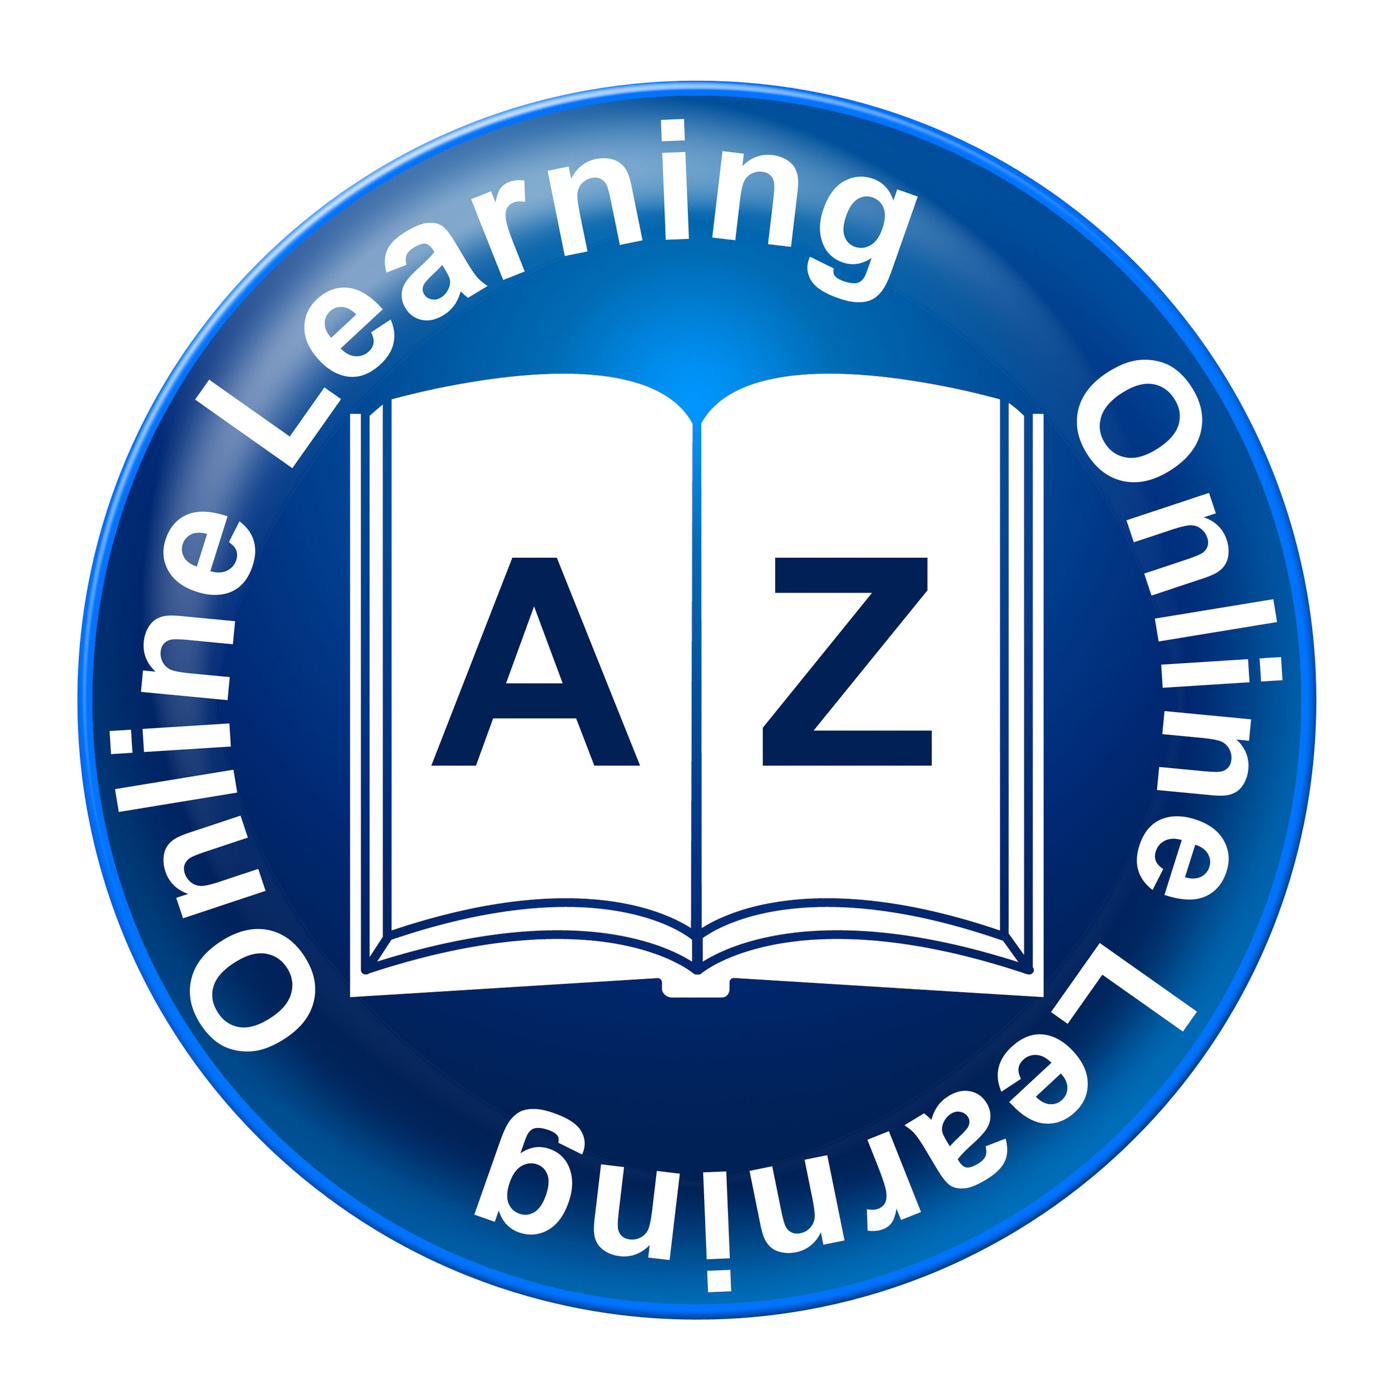 Online learning indicates world wide web and college photo